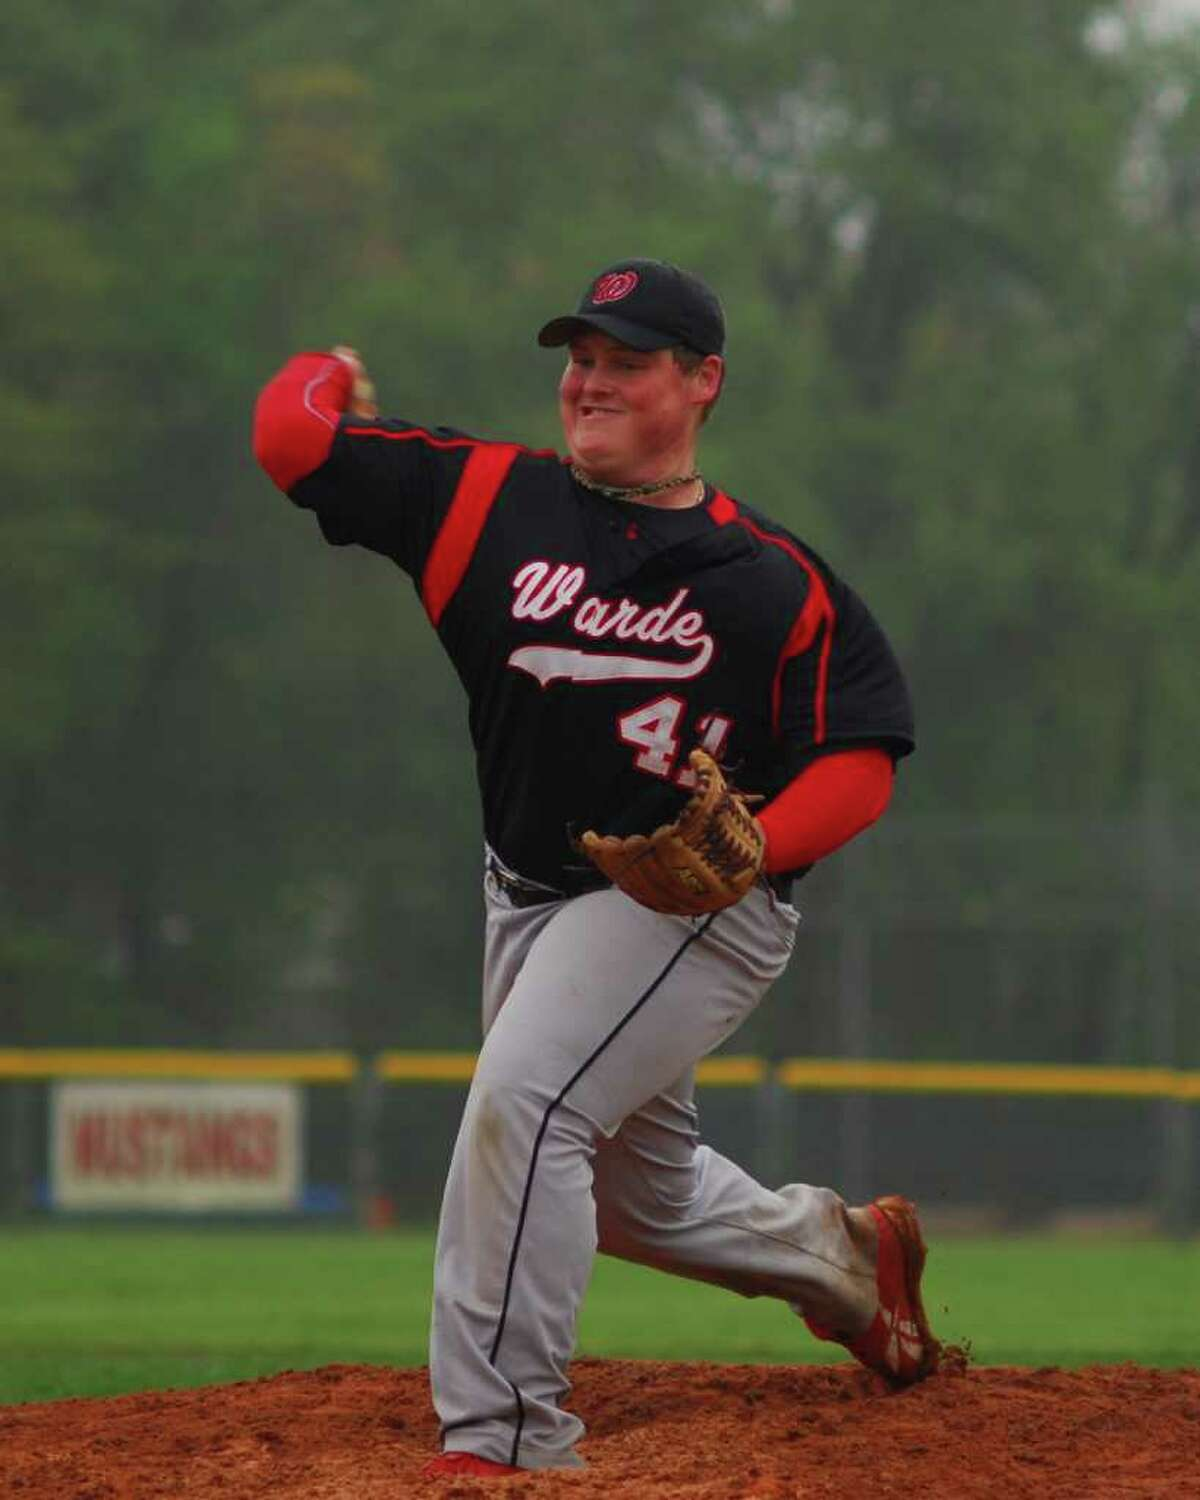 Fairfield Warde pitcher Lance Kreizer fires home during the Mustangs' 15-0 win over Harding on Monday. Kreizer pitched a perfect game on May 9 against Bassick.